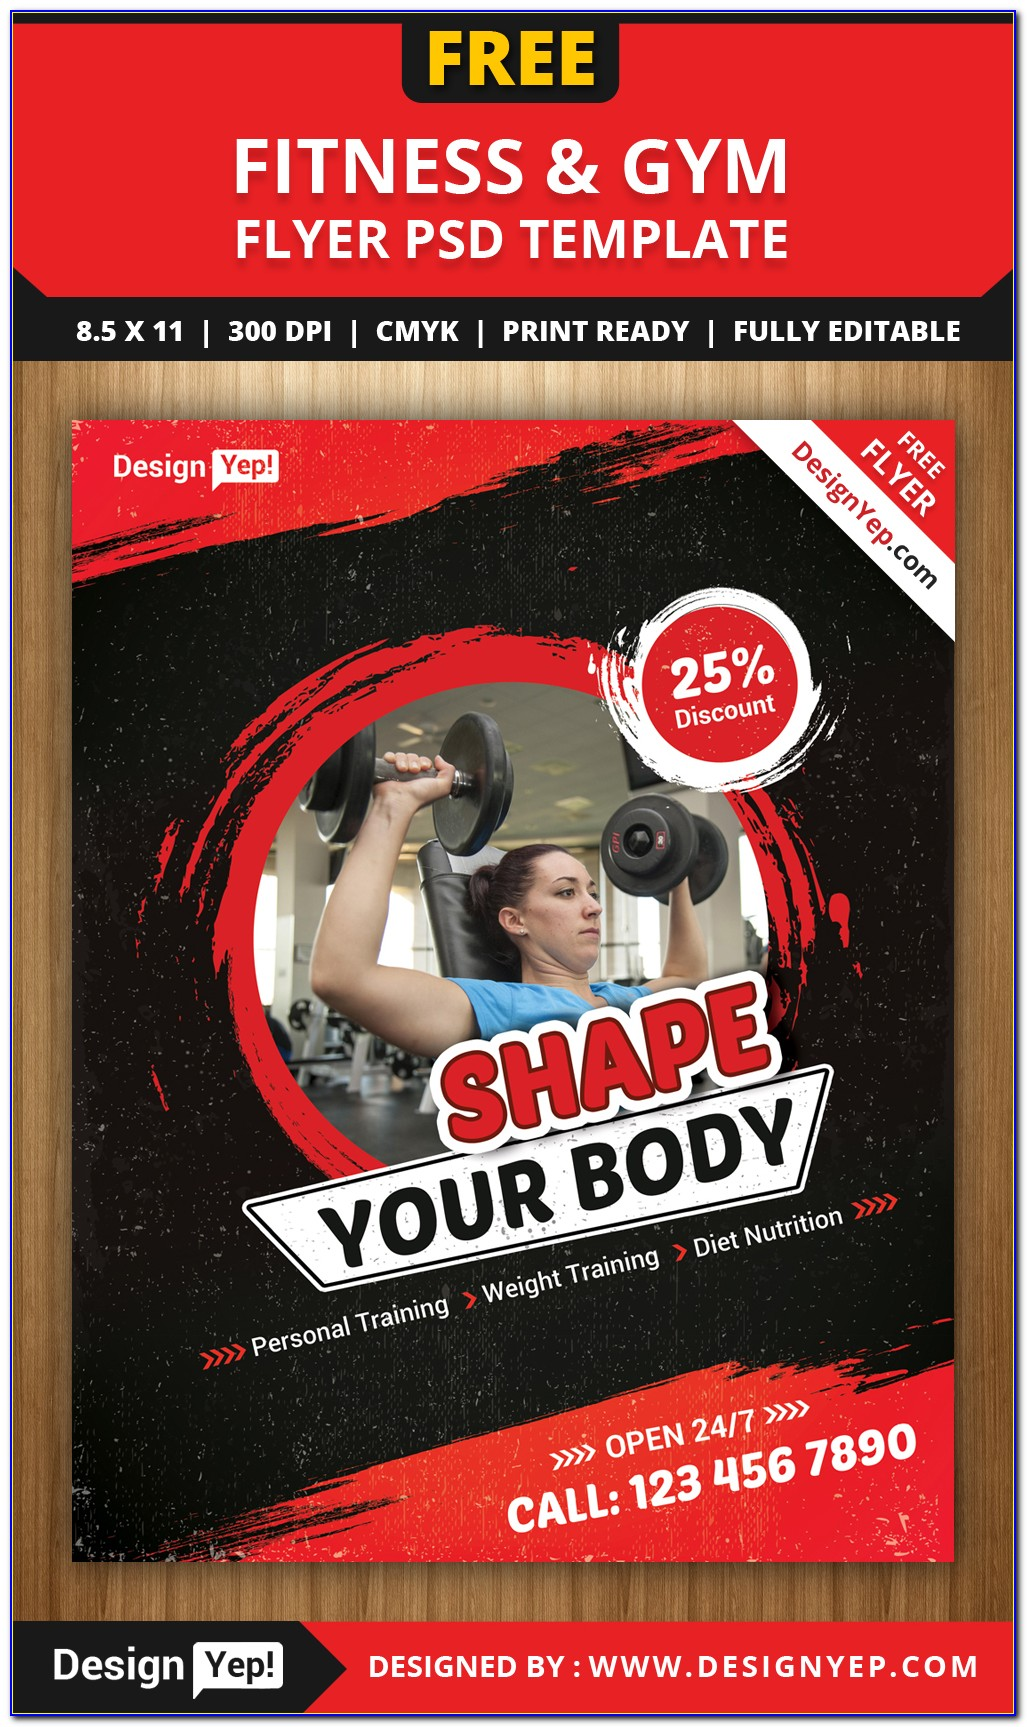 Fitness Flyer Template Word Free